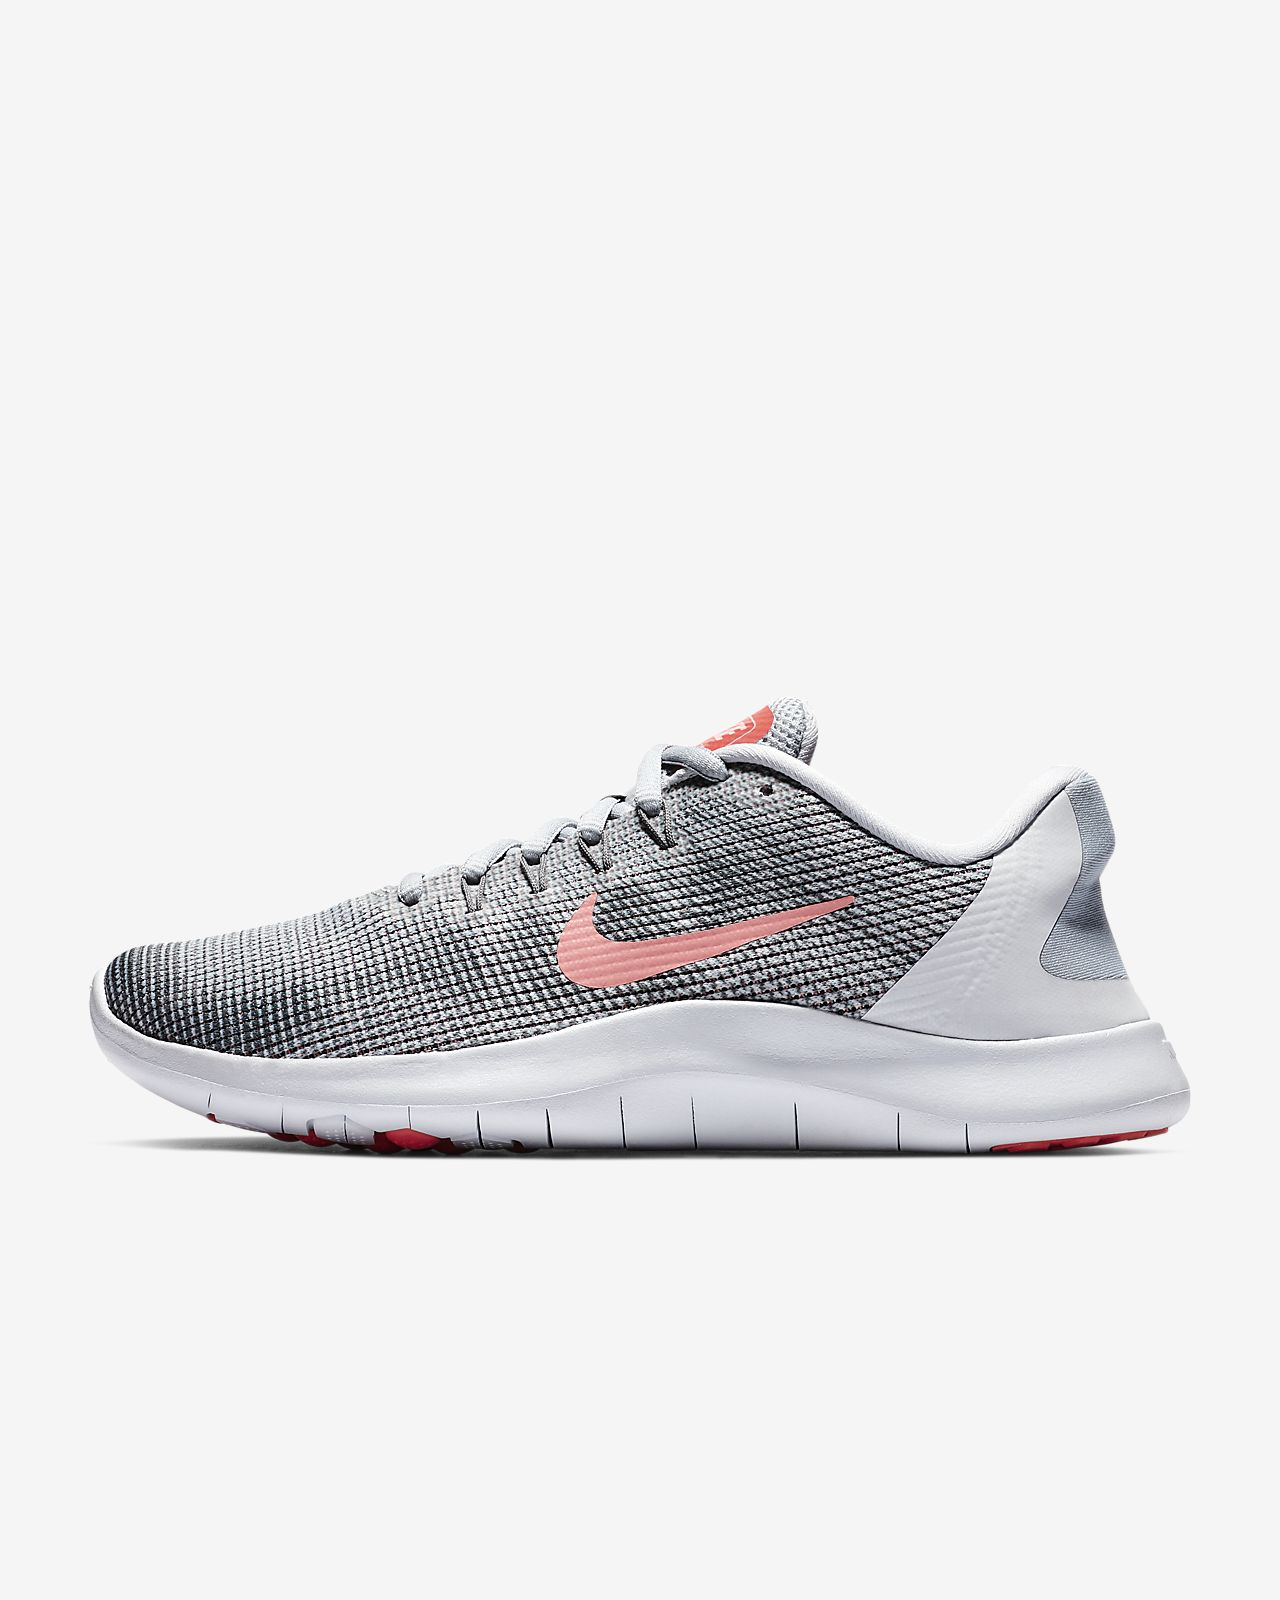 new arrivals 1bd1b 1adbd Women s Running Shoe. Nike Flex RN 2018